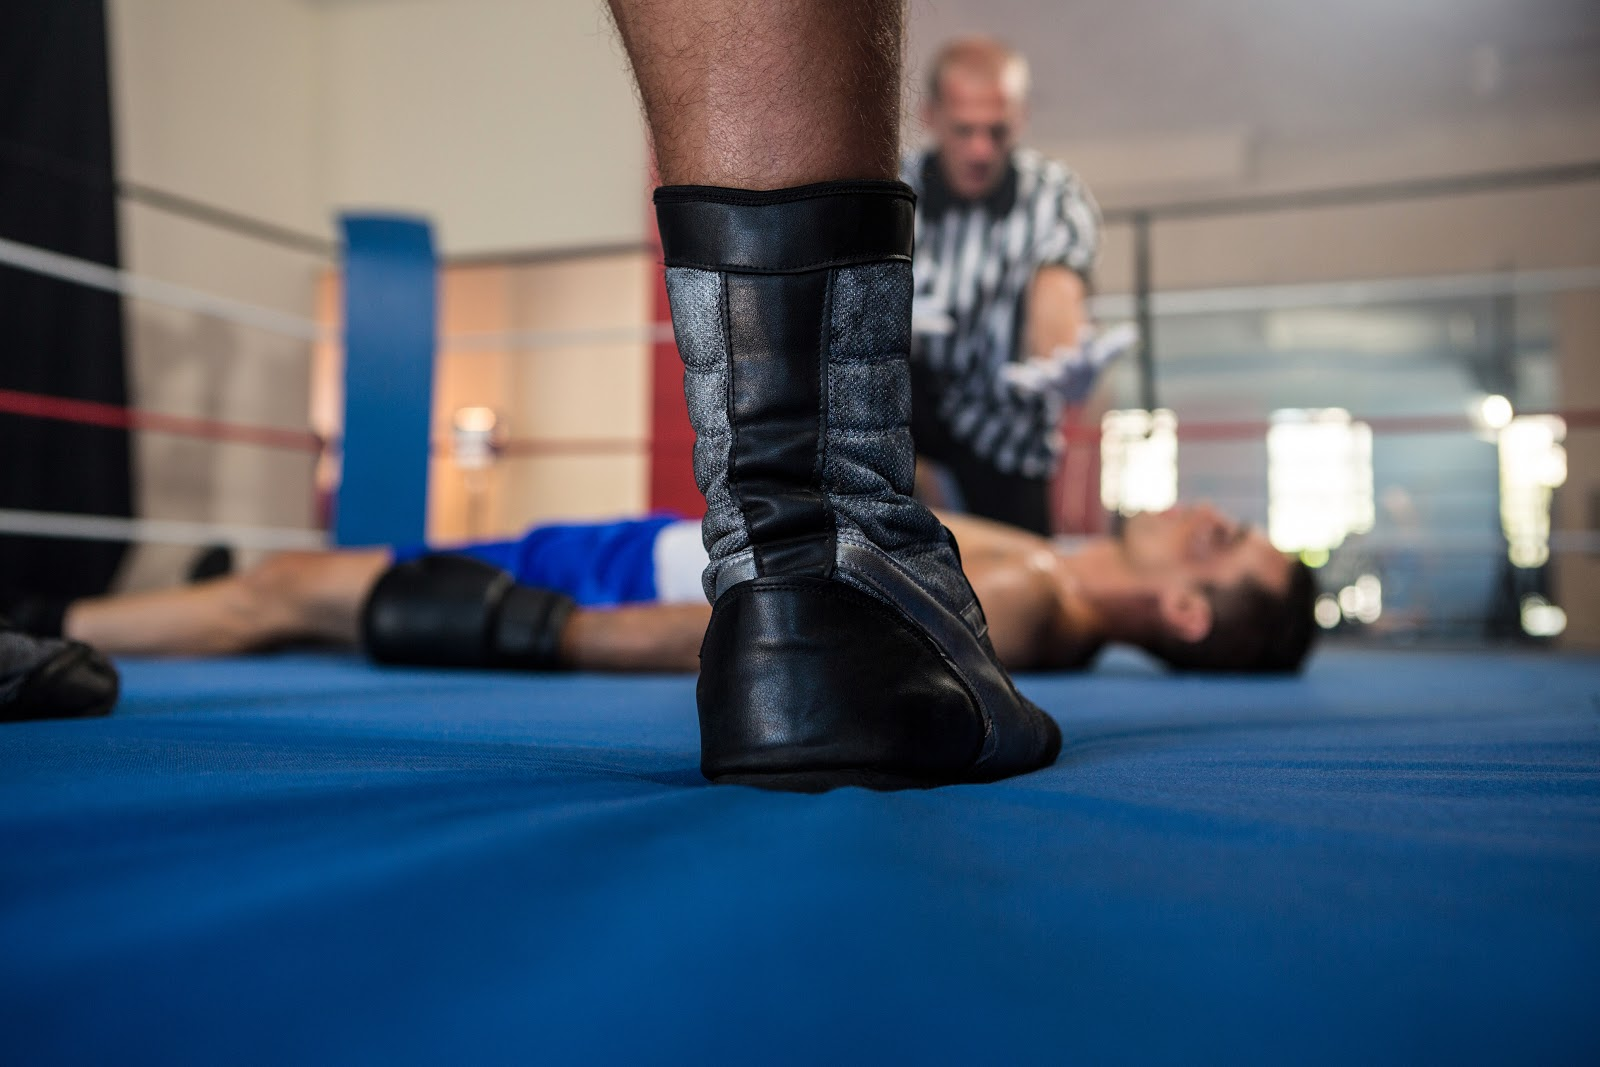 Boxing referee counting down a knockout in a ring.